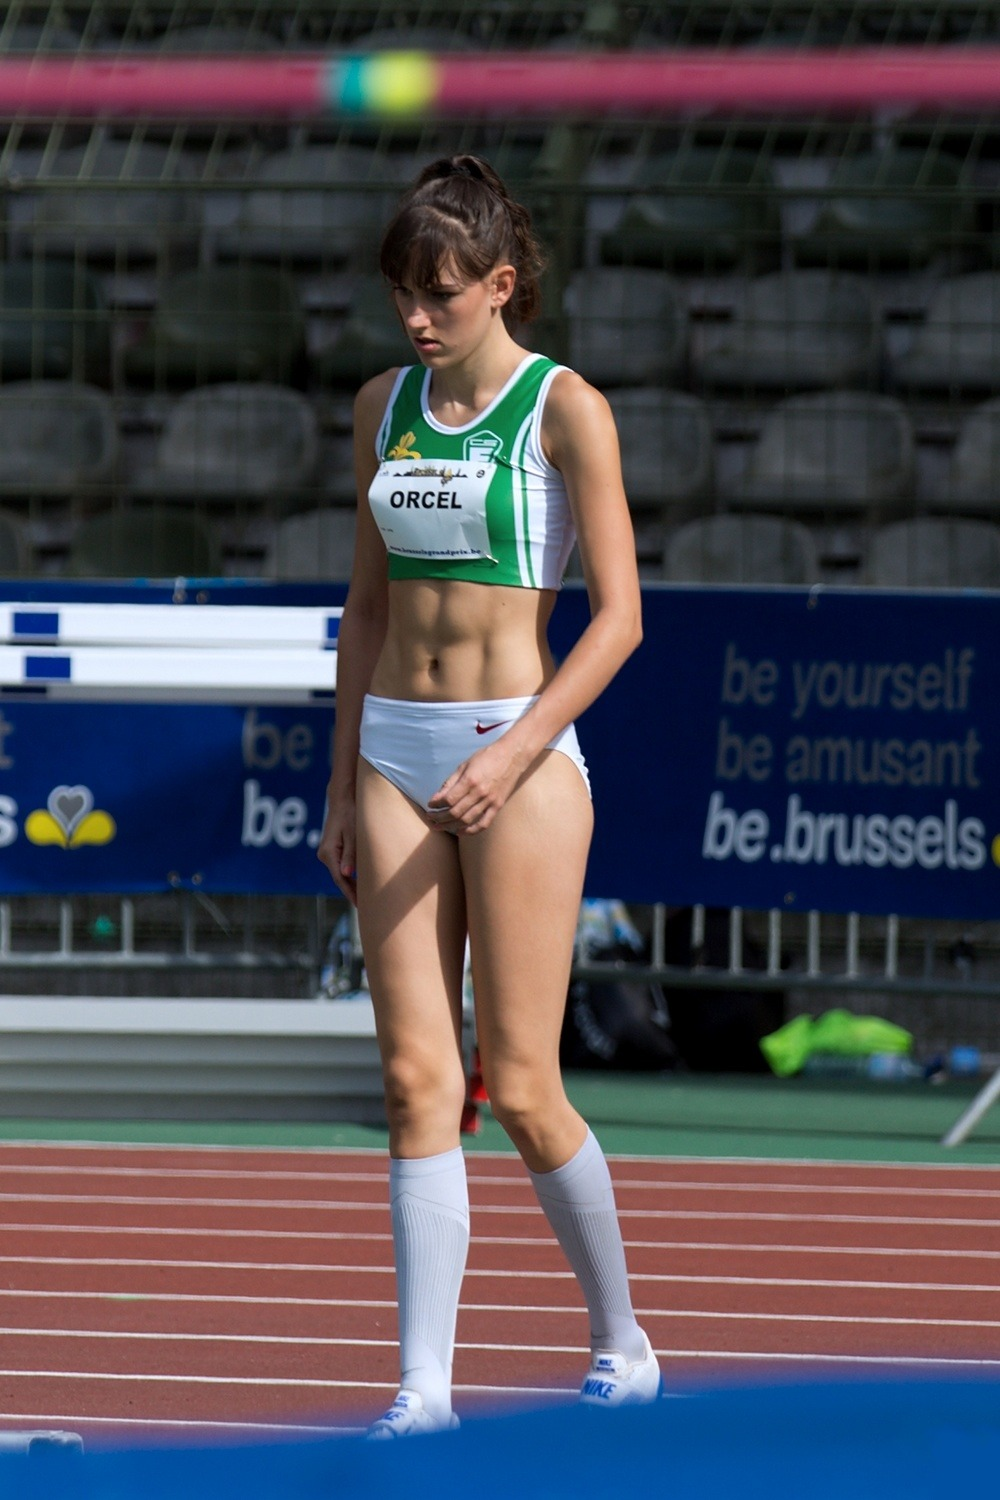 Claire Orcel 2017 Brussels Grand Prix